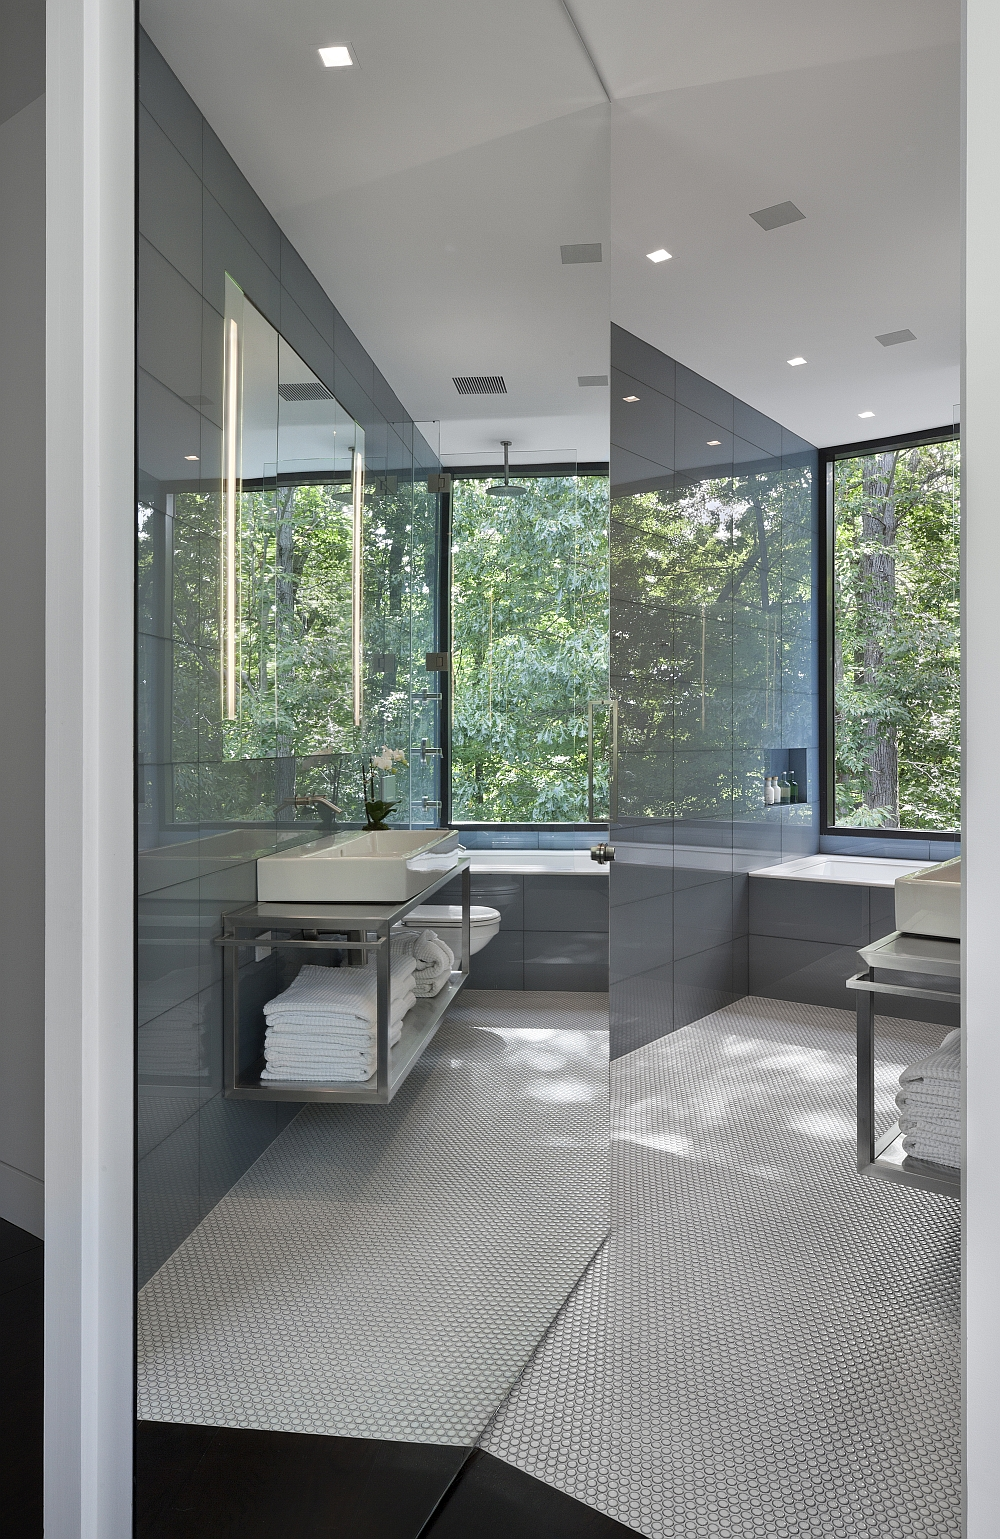 Glass surfaces give even the smallest of spaces a more airy look